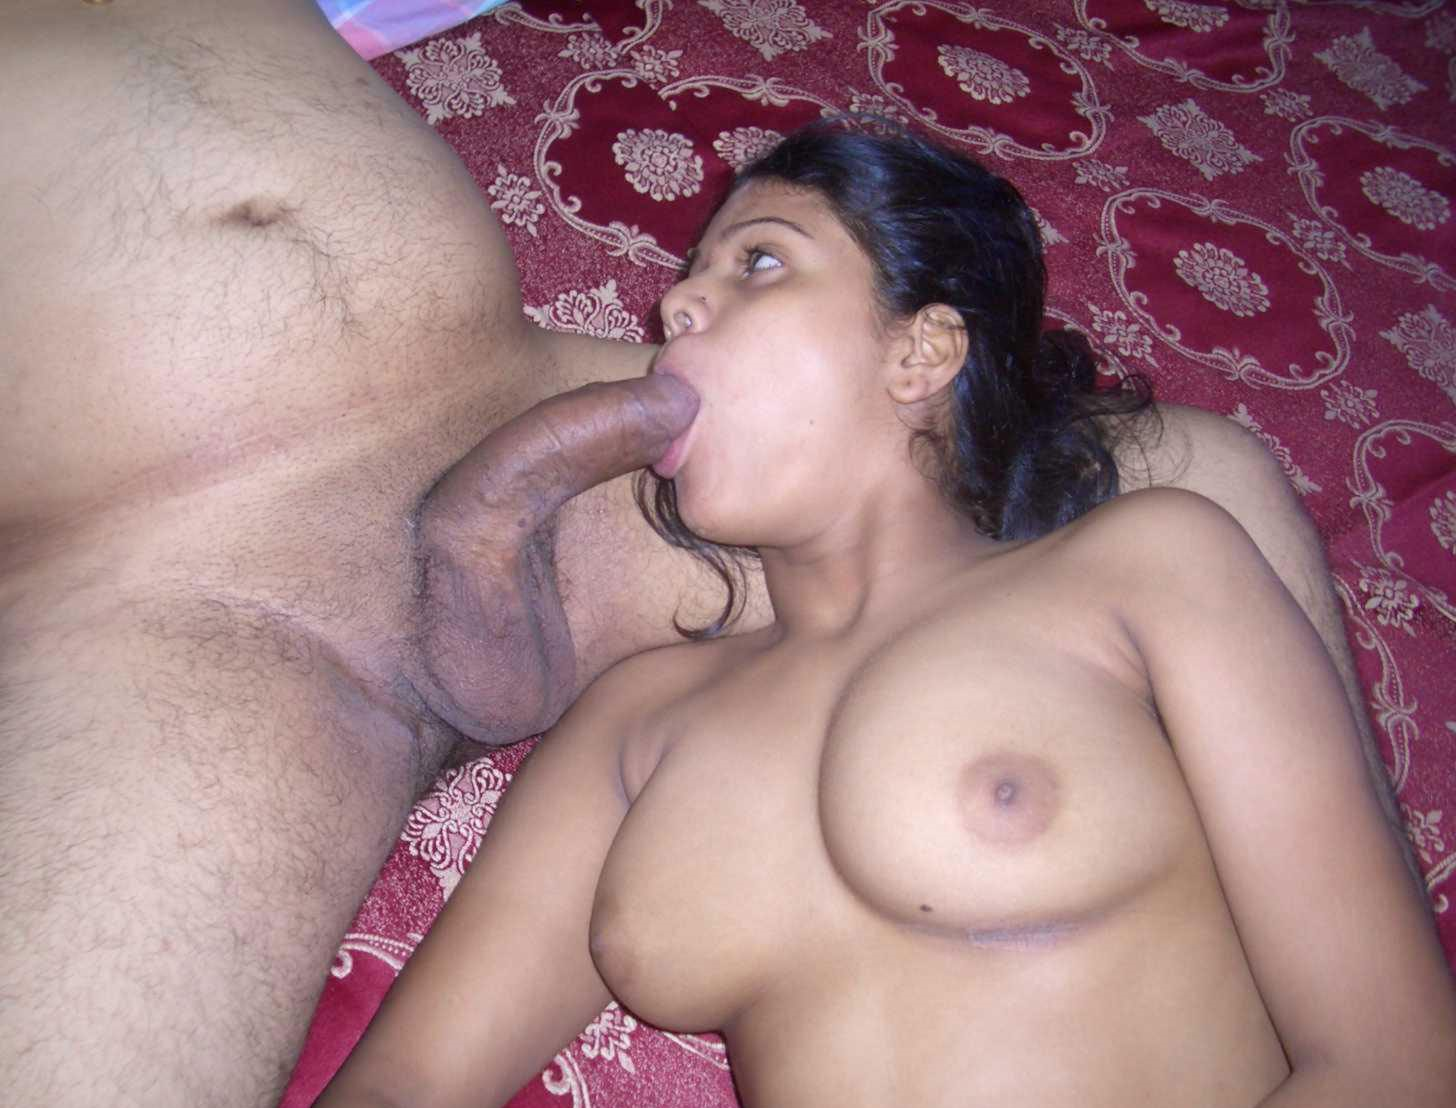 Indian desi lovers bf and girlfriend sex in hotel tnaflix porn pics